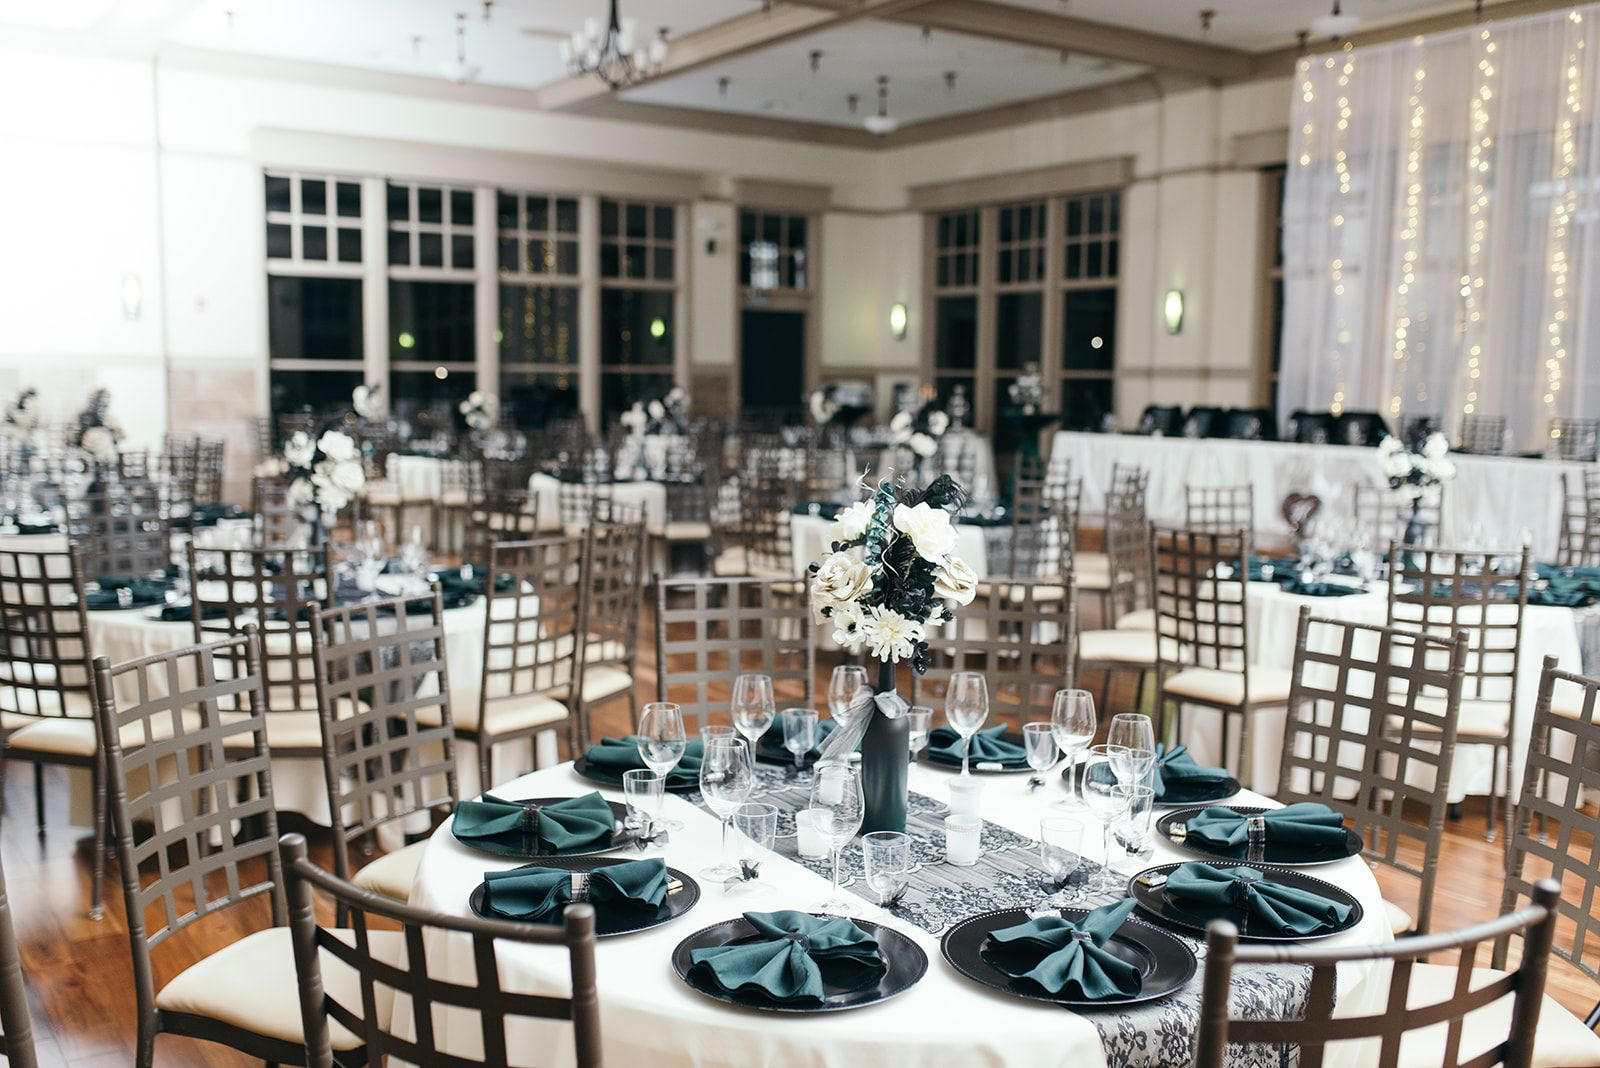 An Eclectic Vintage Wedding At Noah S Event Venue In Des Moines Ia Traditional Wedding Decor Event Venues Vintage Wedding Theme